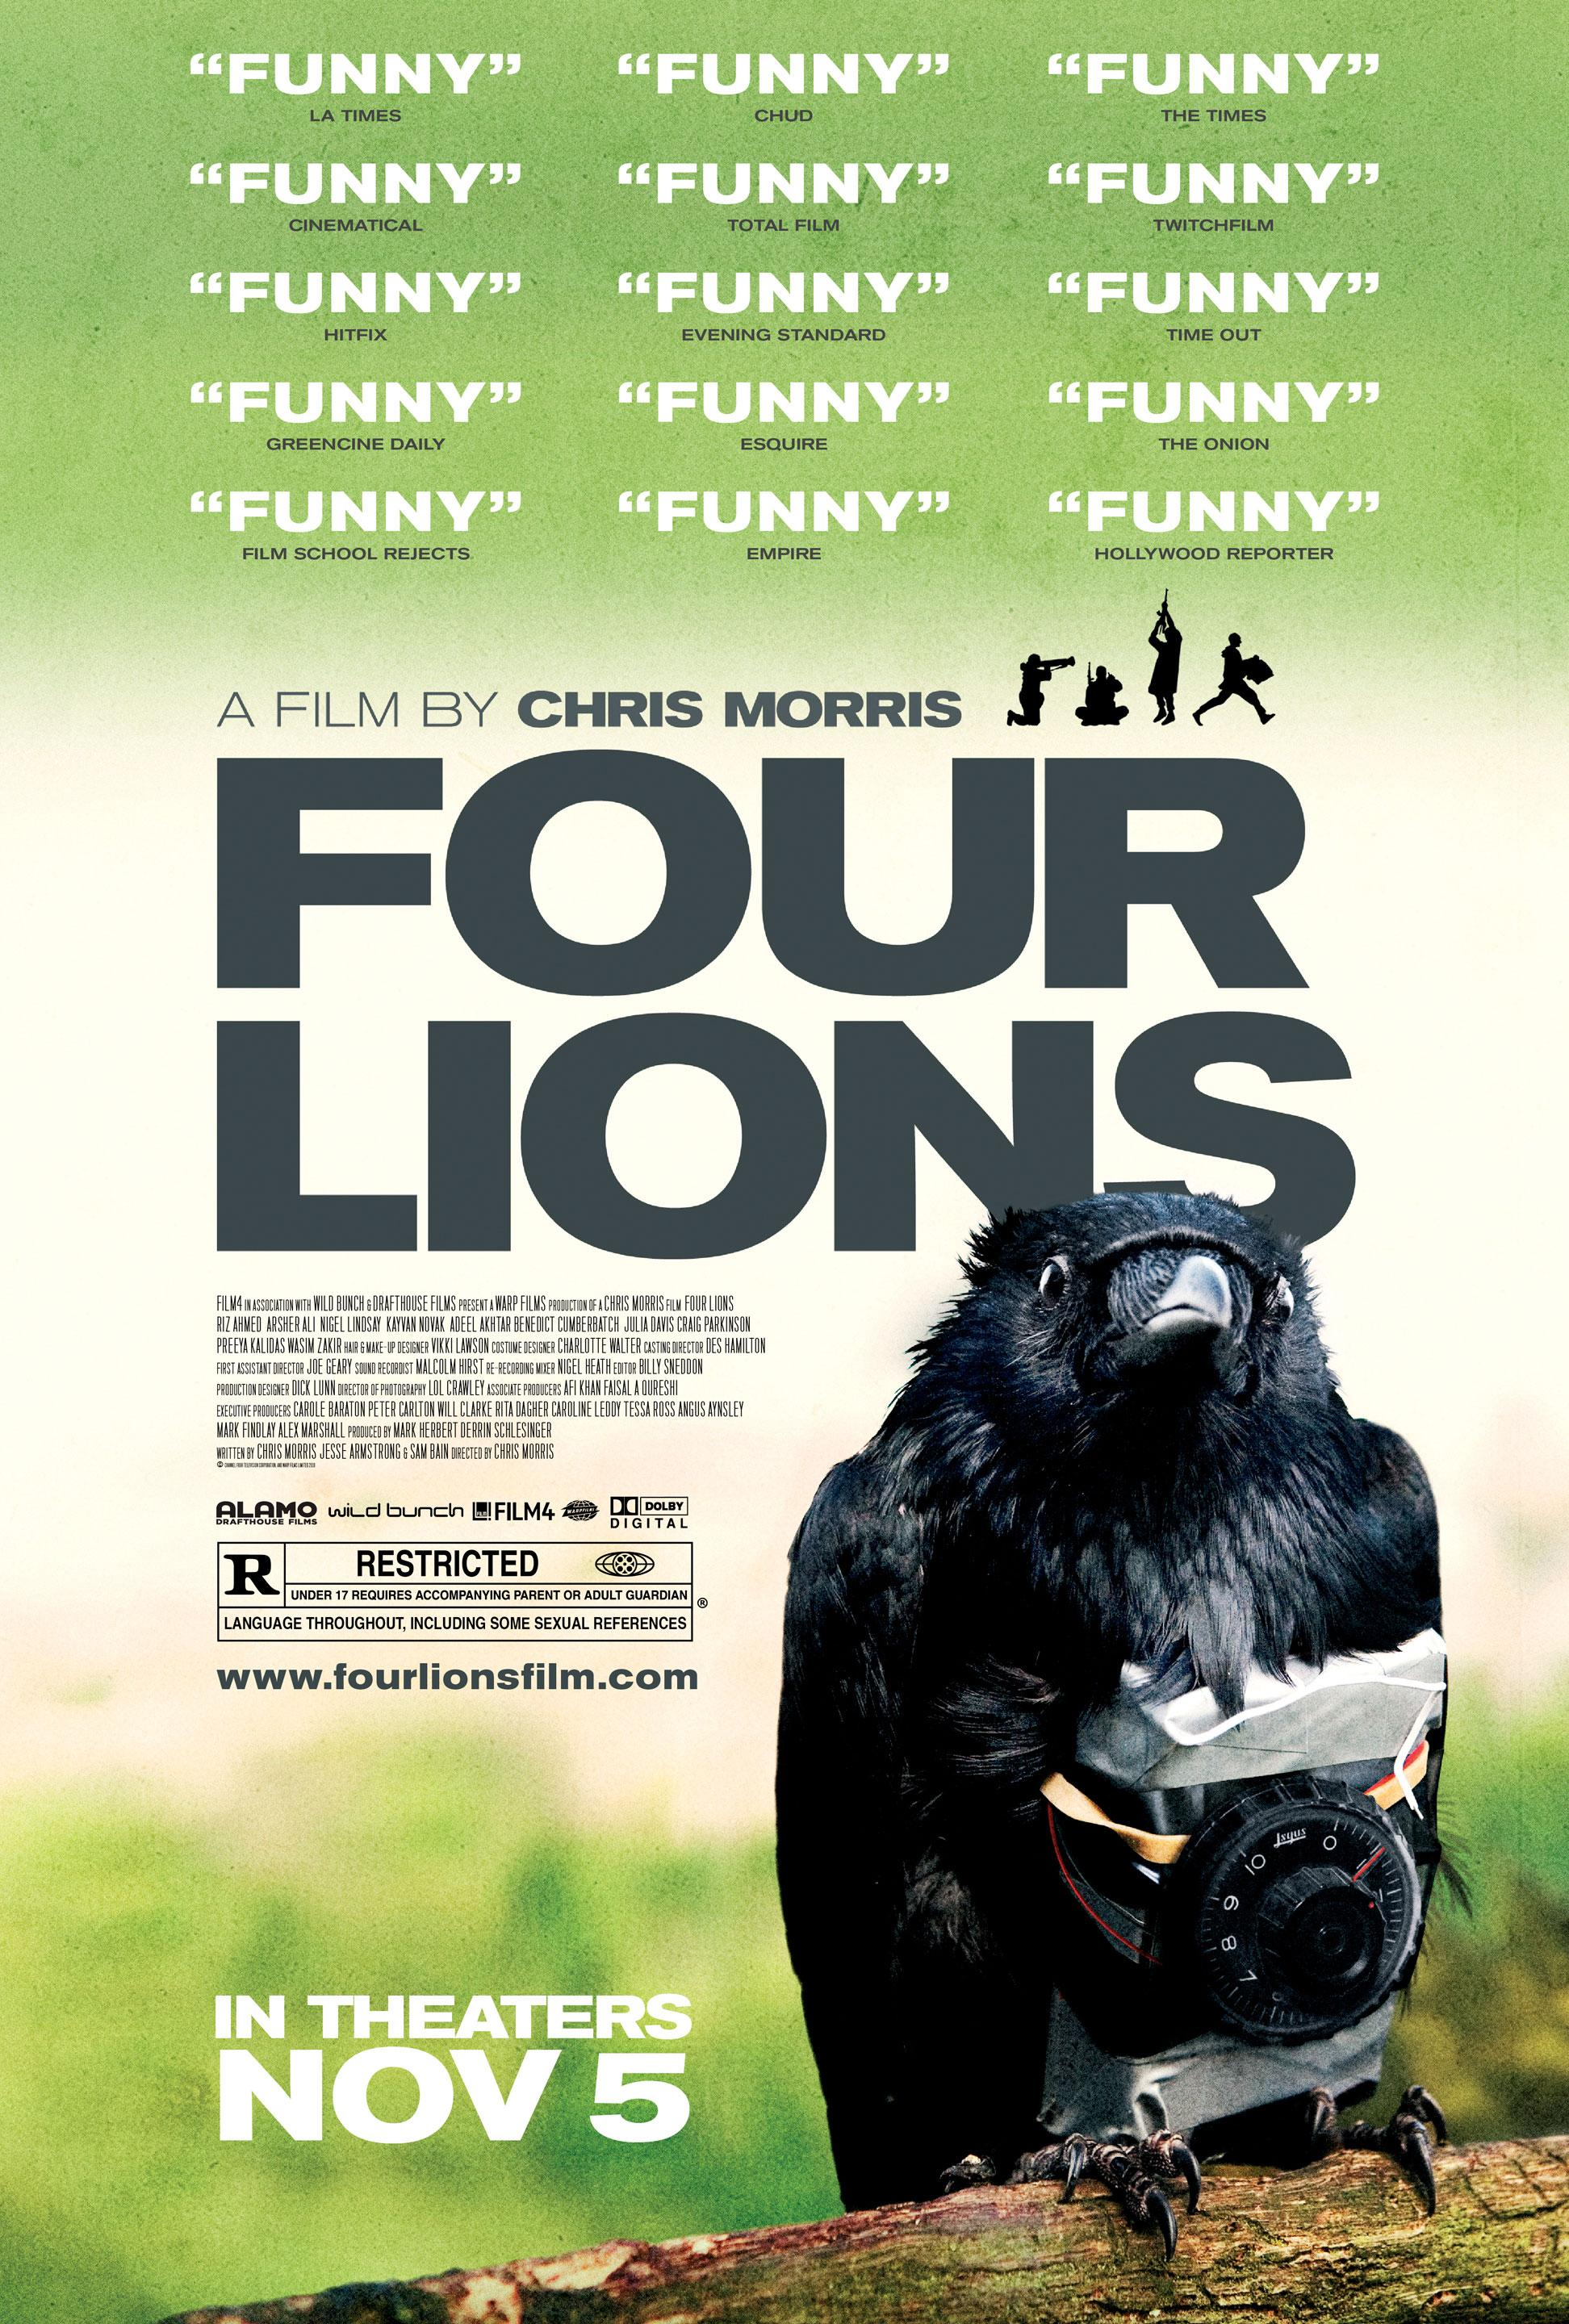 FOUR LIONS Movie Poster - image 2 - student project